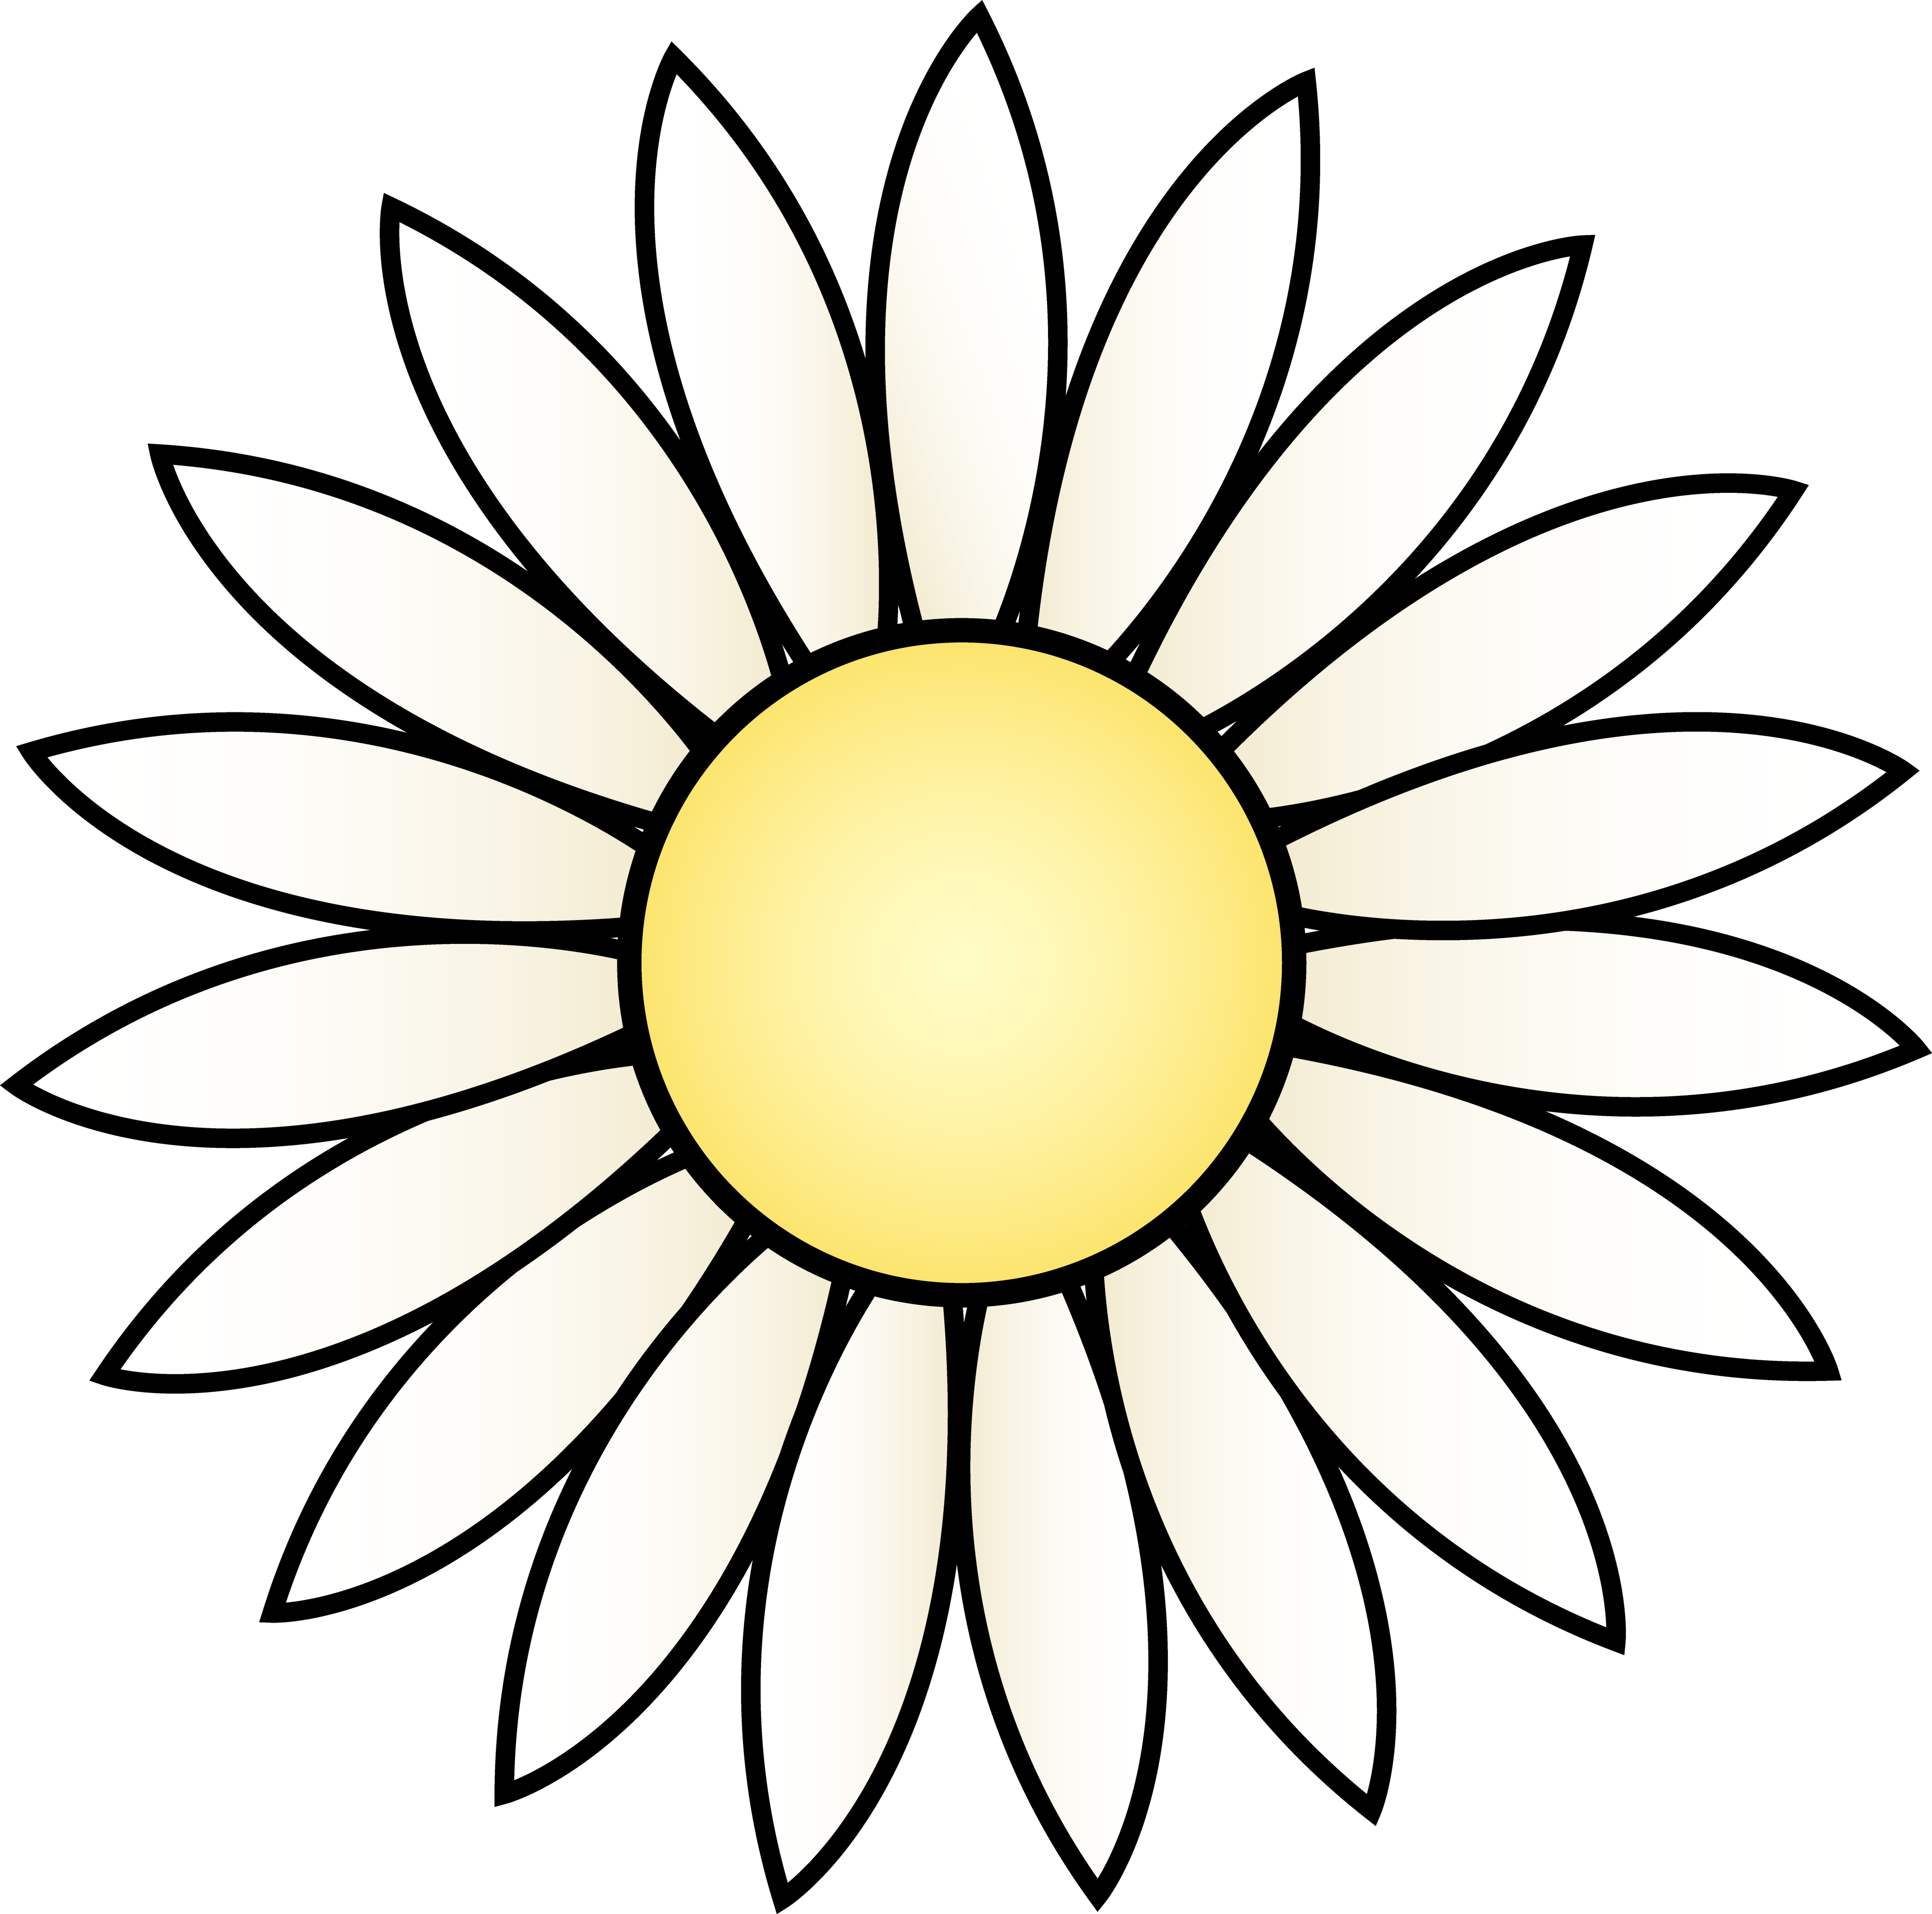 Daisy clipart transparent background. Free cliparts download clip